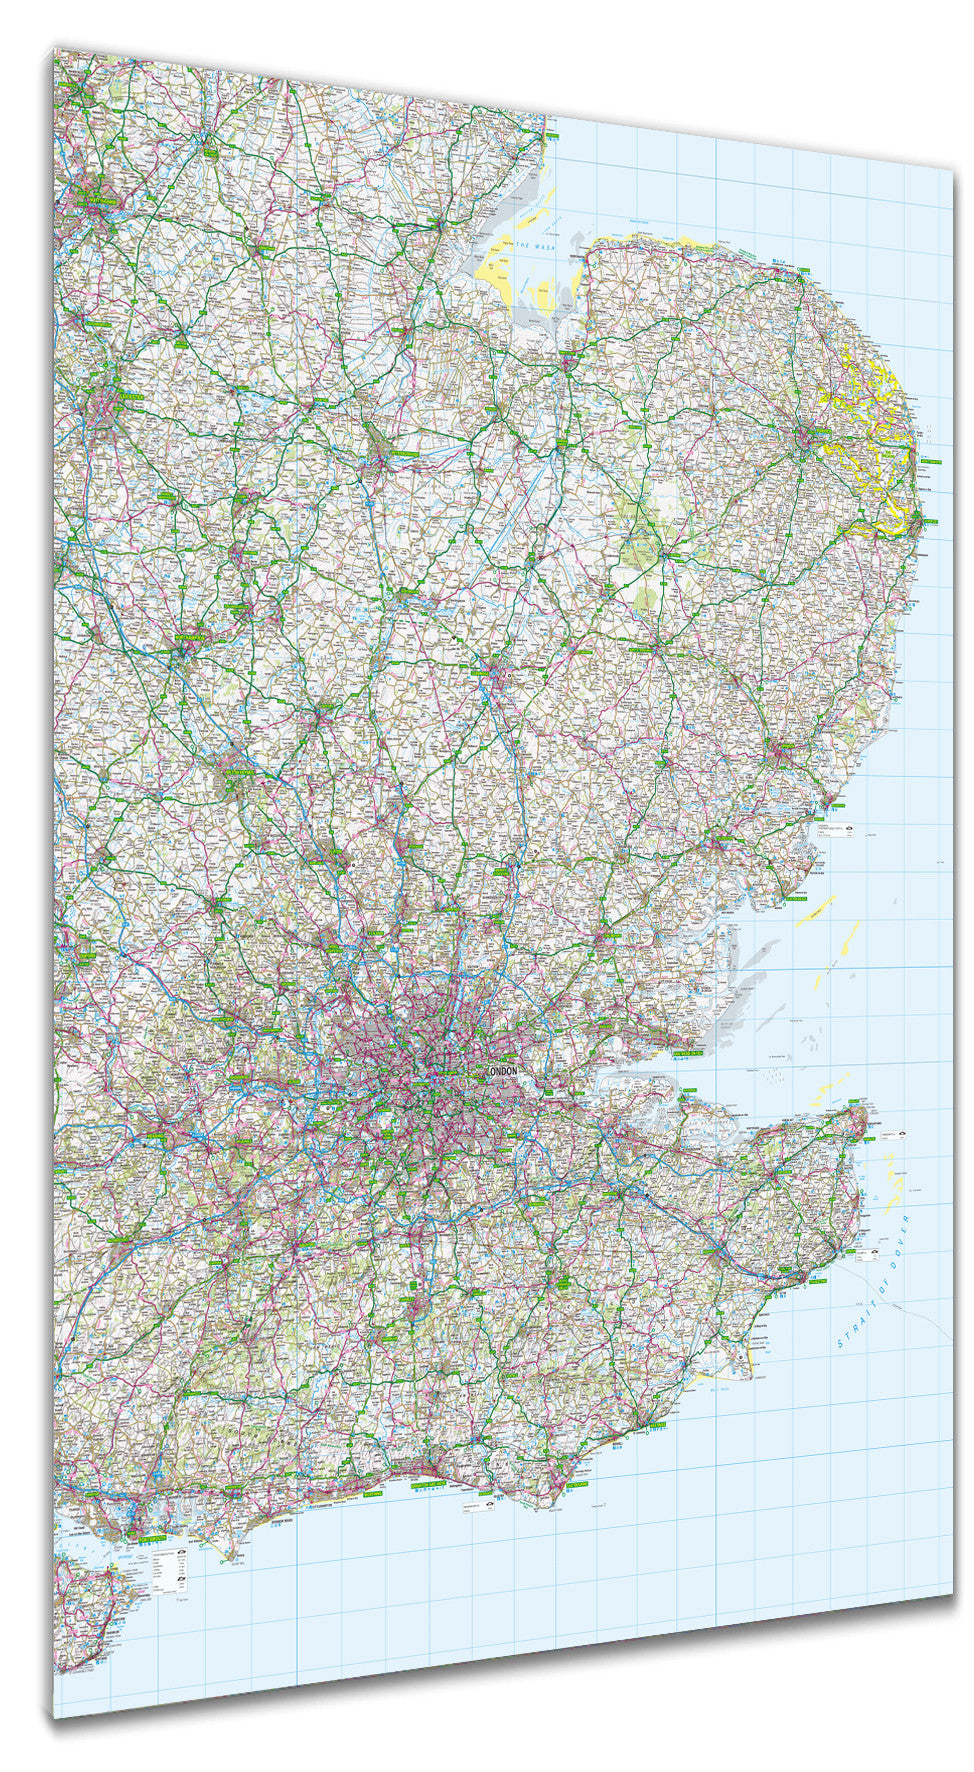 Map Of England Poster.Map Poster Gb Regional Map East Anglia And Southeast England